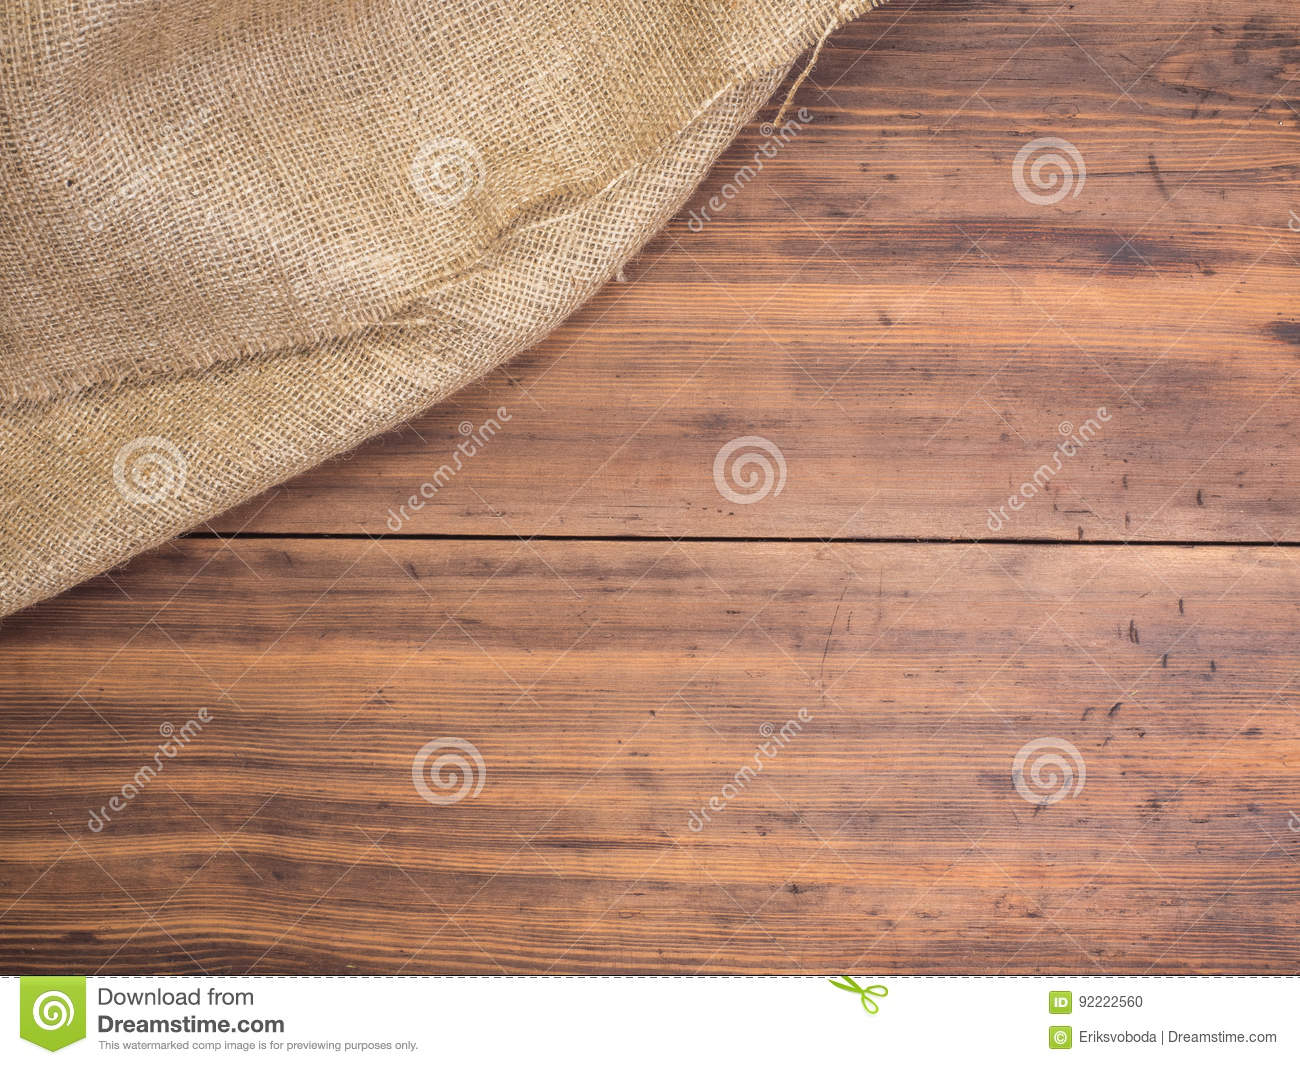 Old rural wooden table boards and burlap vintage background, photo top view. Hessian, sacking texture on wooden